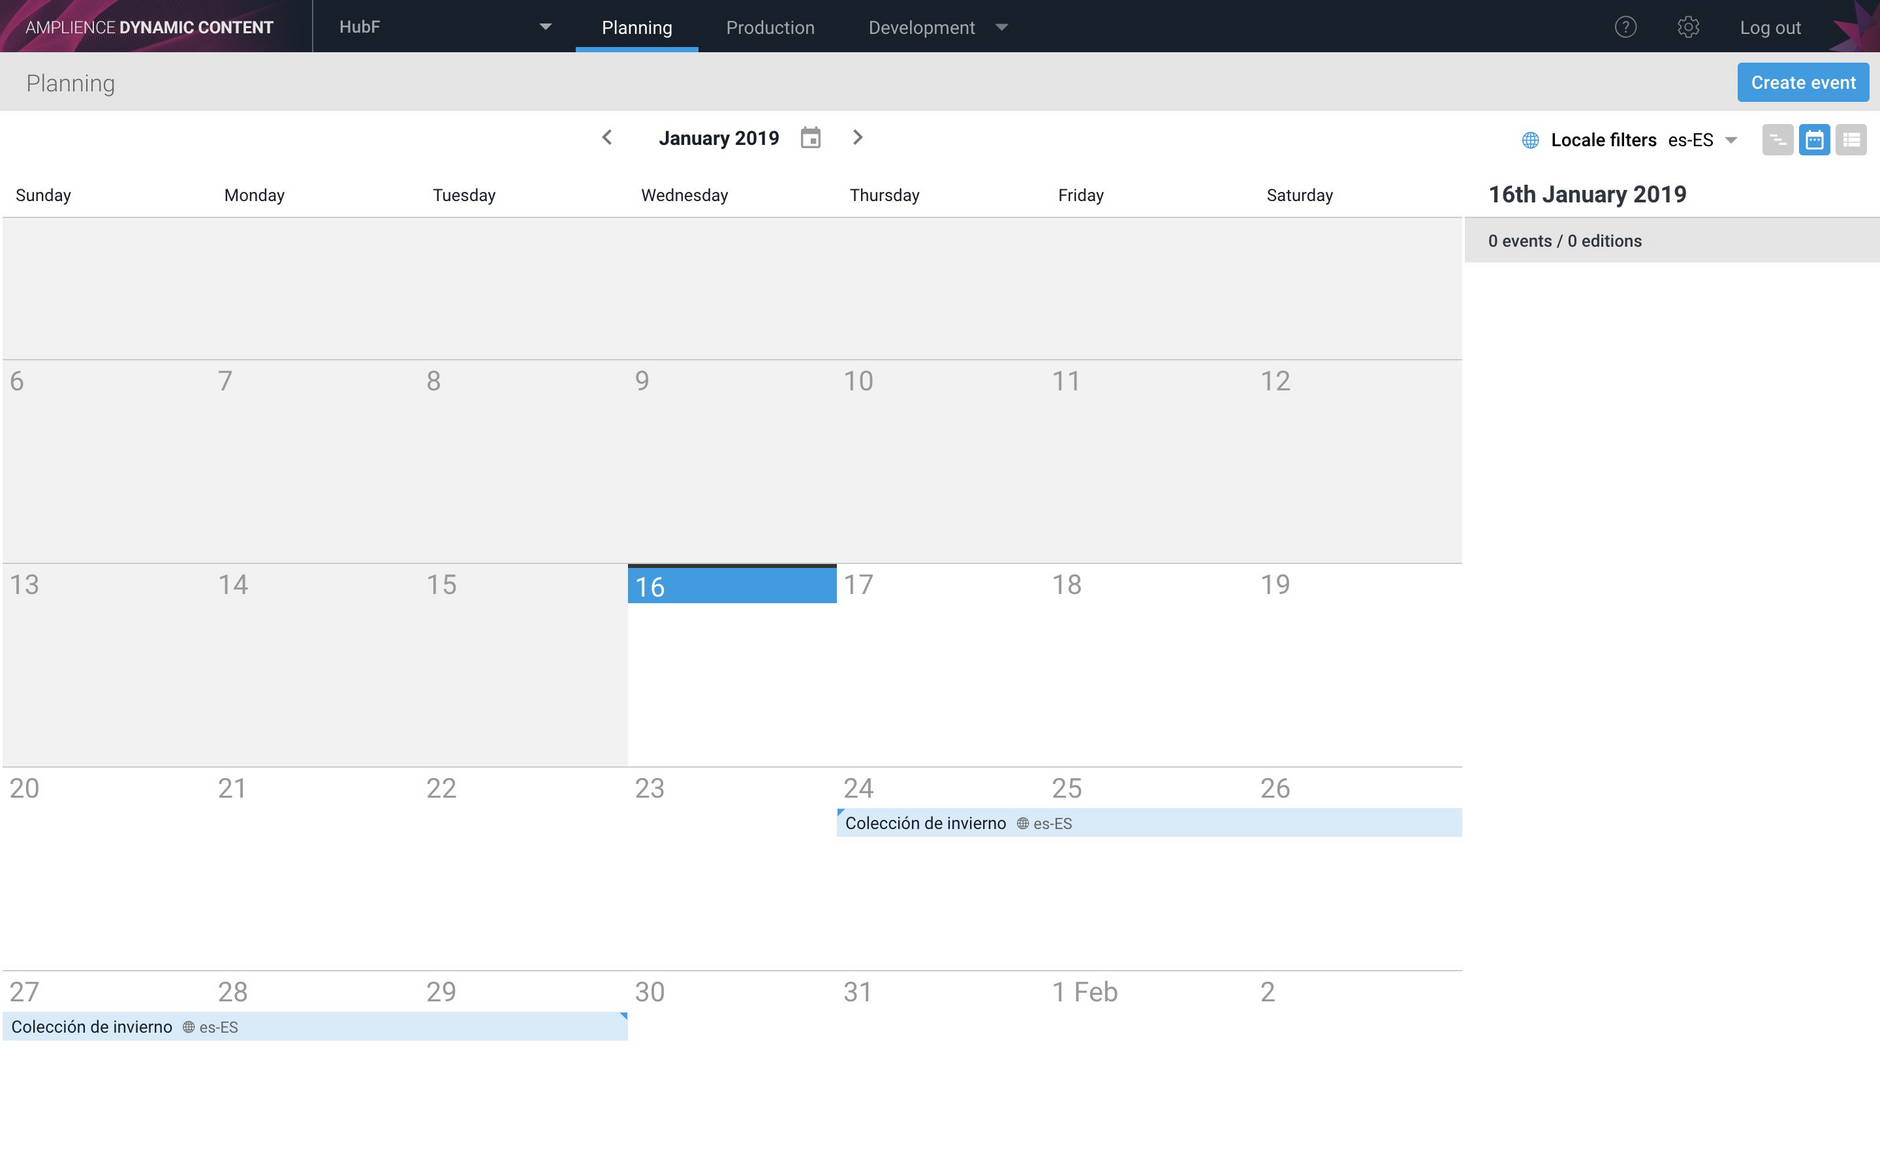 Locale filtering is also available in the calendar and list views